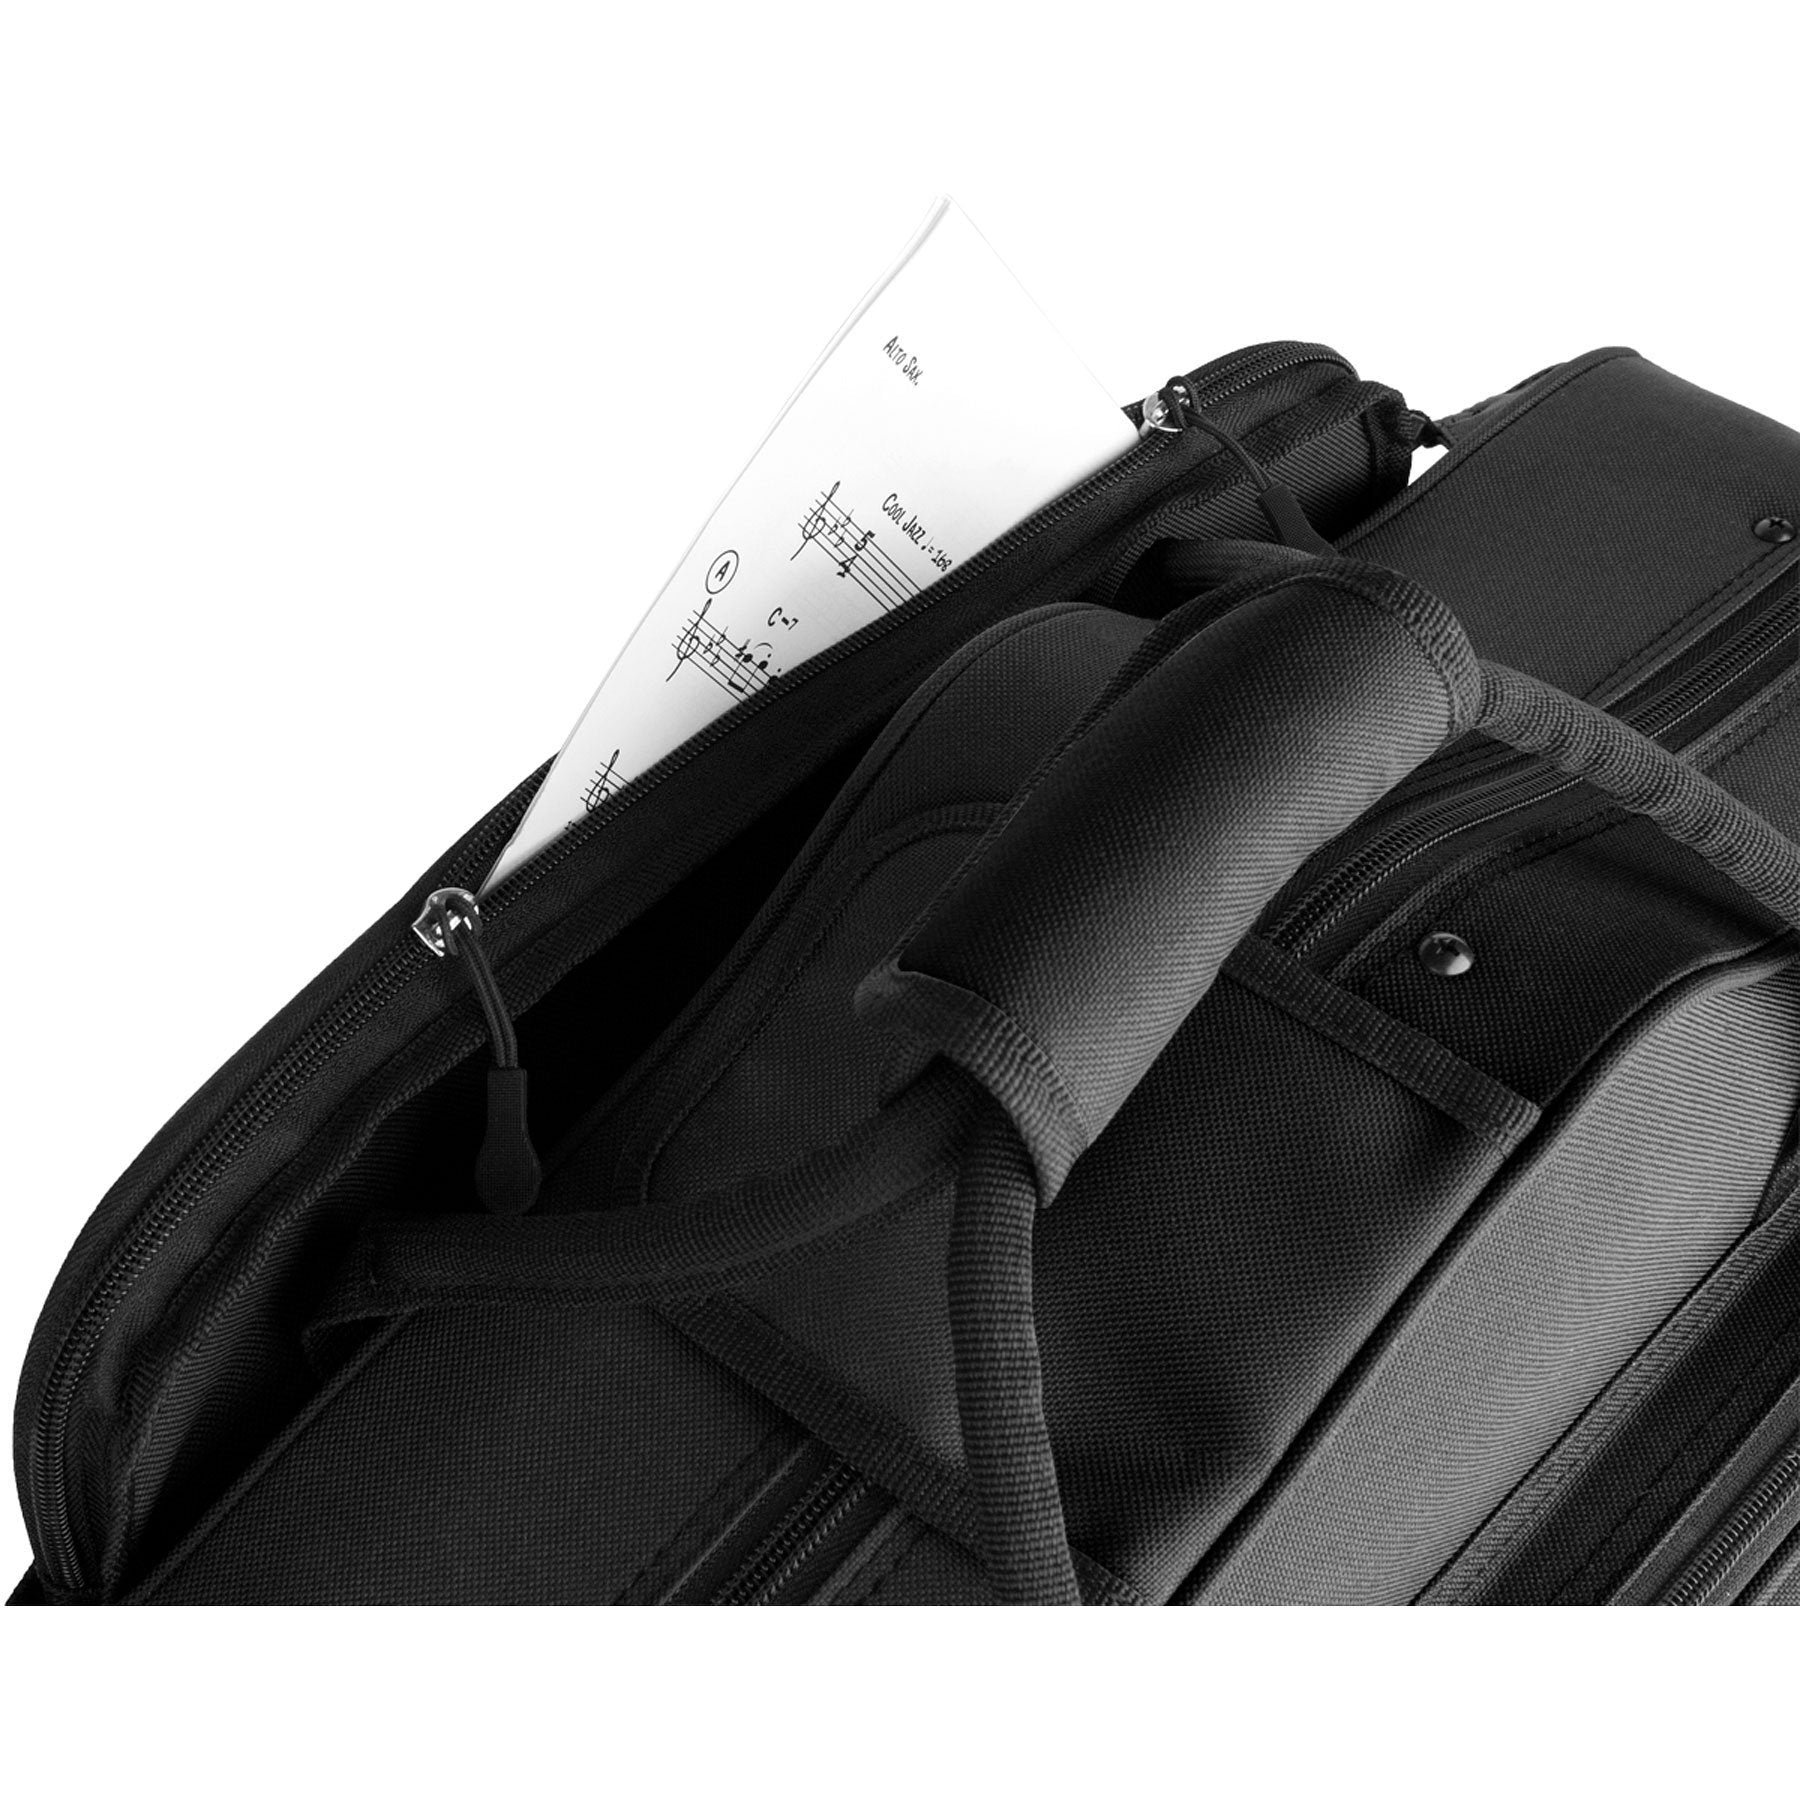 Protec - Tenor Saxophone Max Case (Contoured)-Accessories-Protec-Music Elements